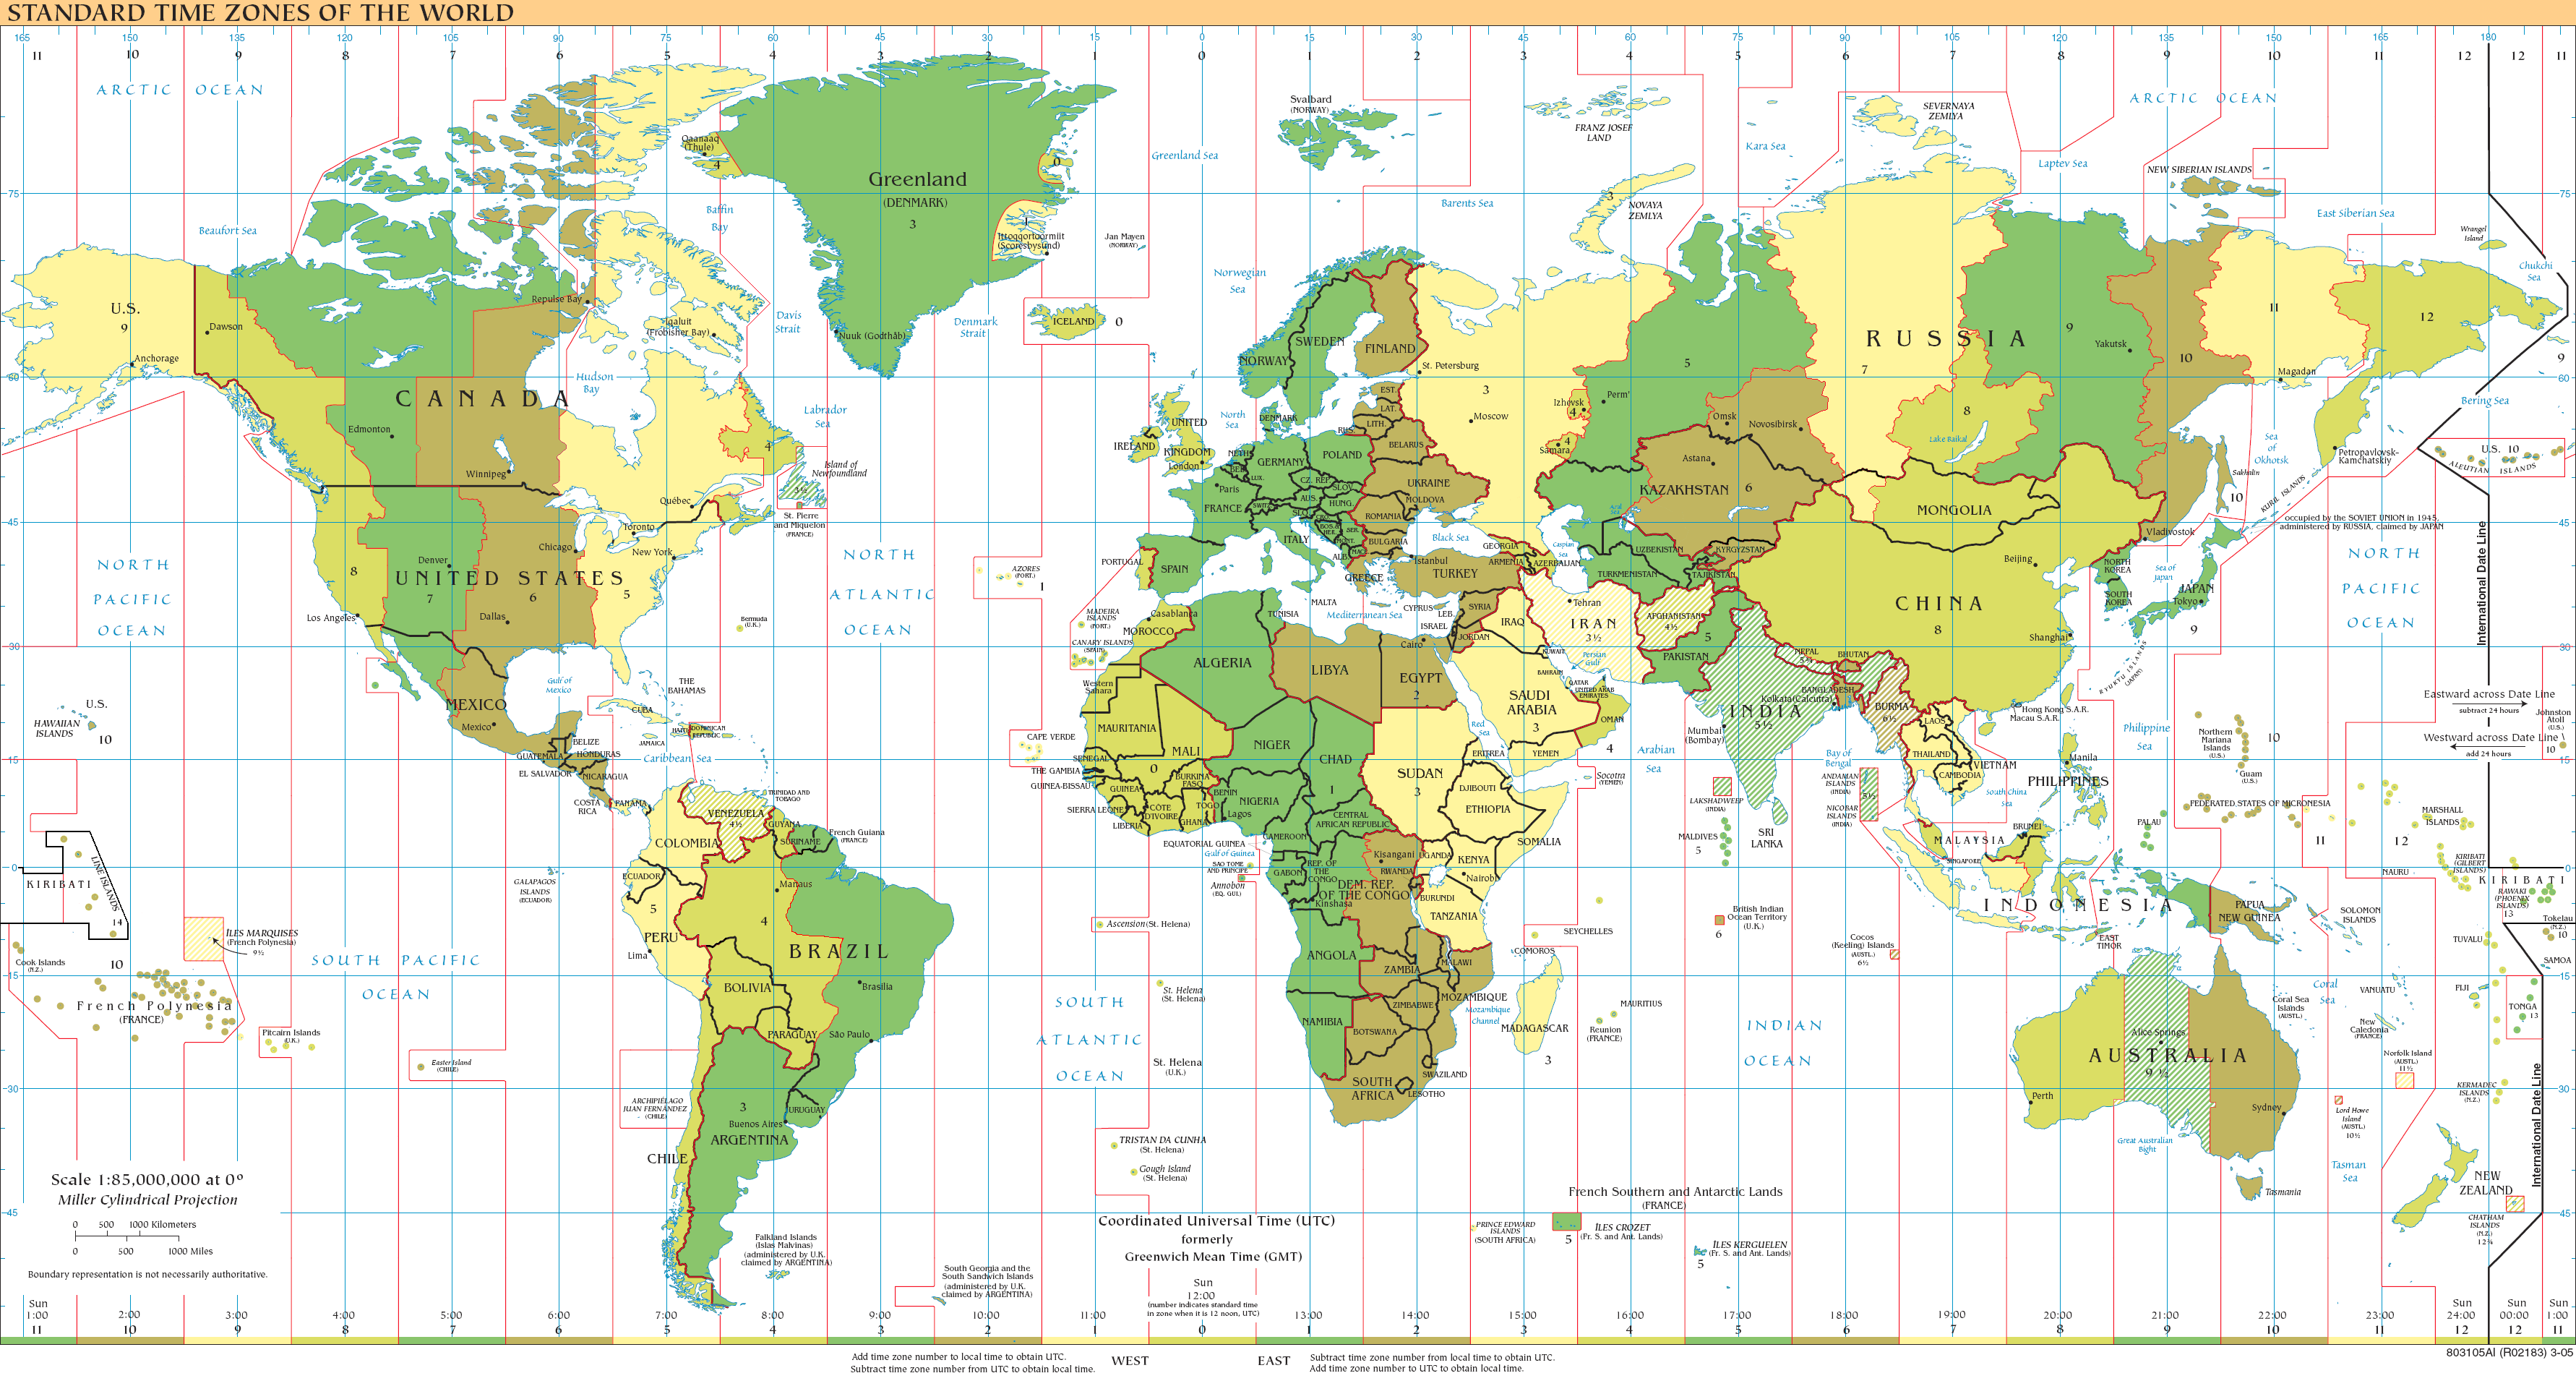 2008 TimeZone map from Wikipedia